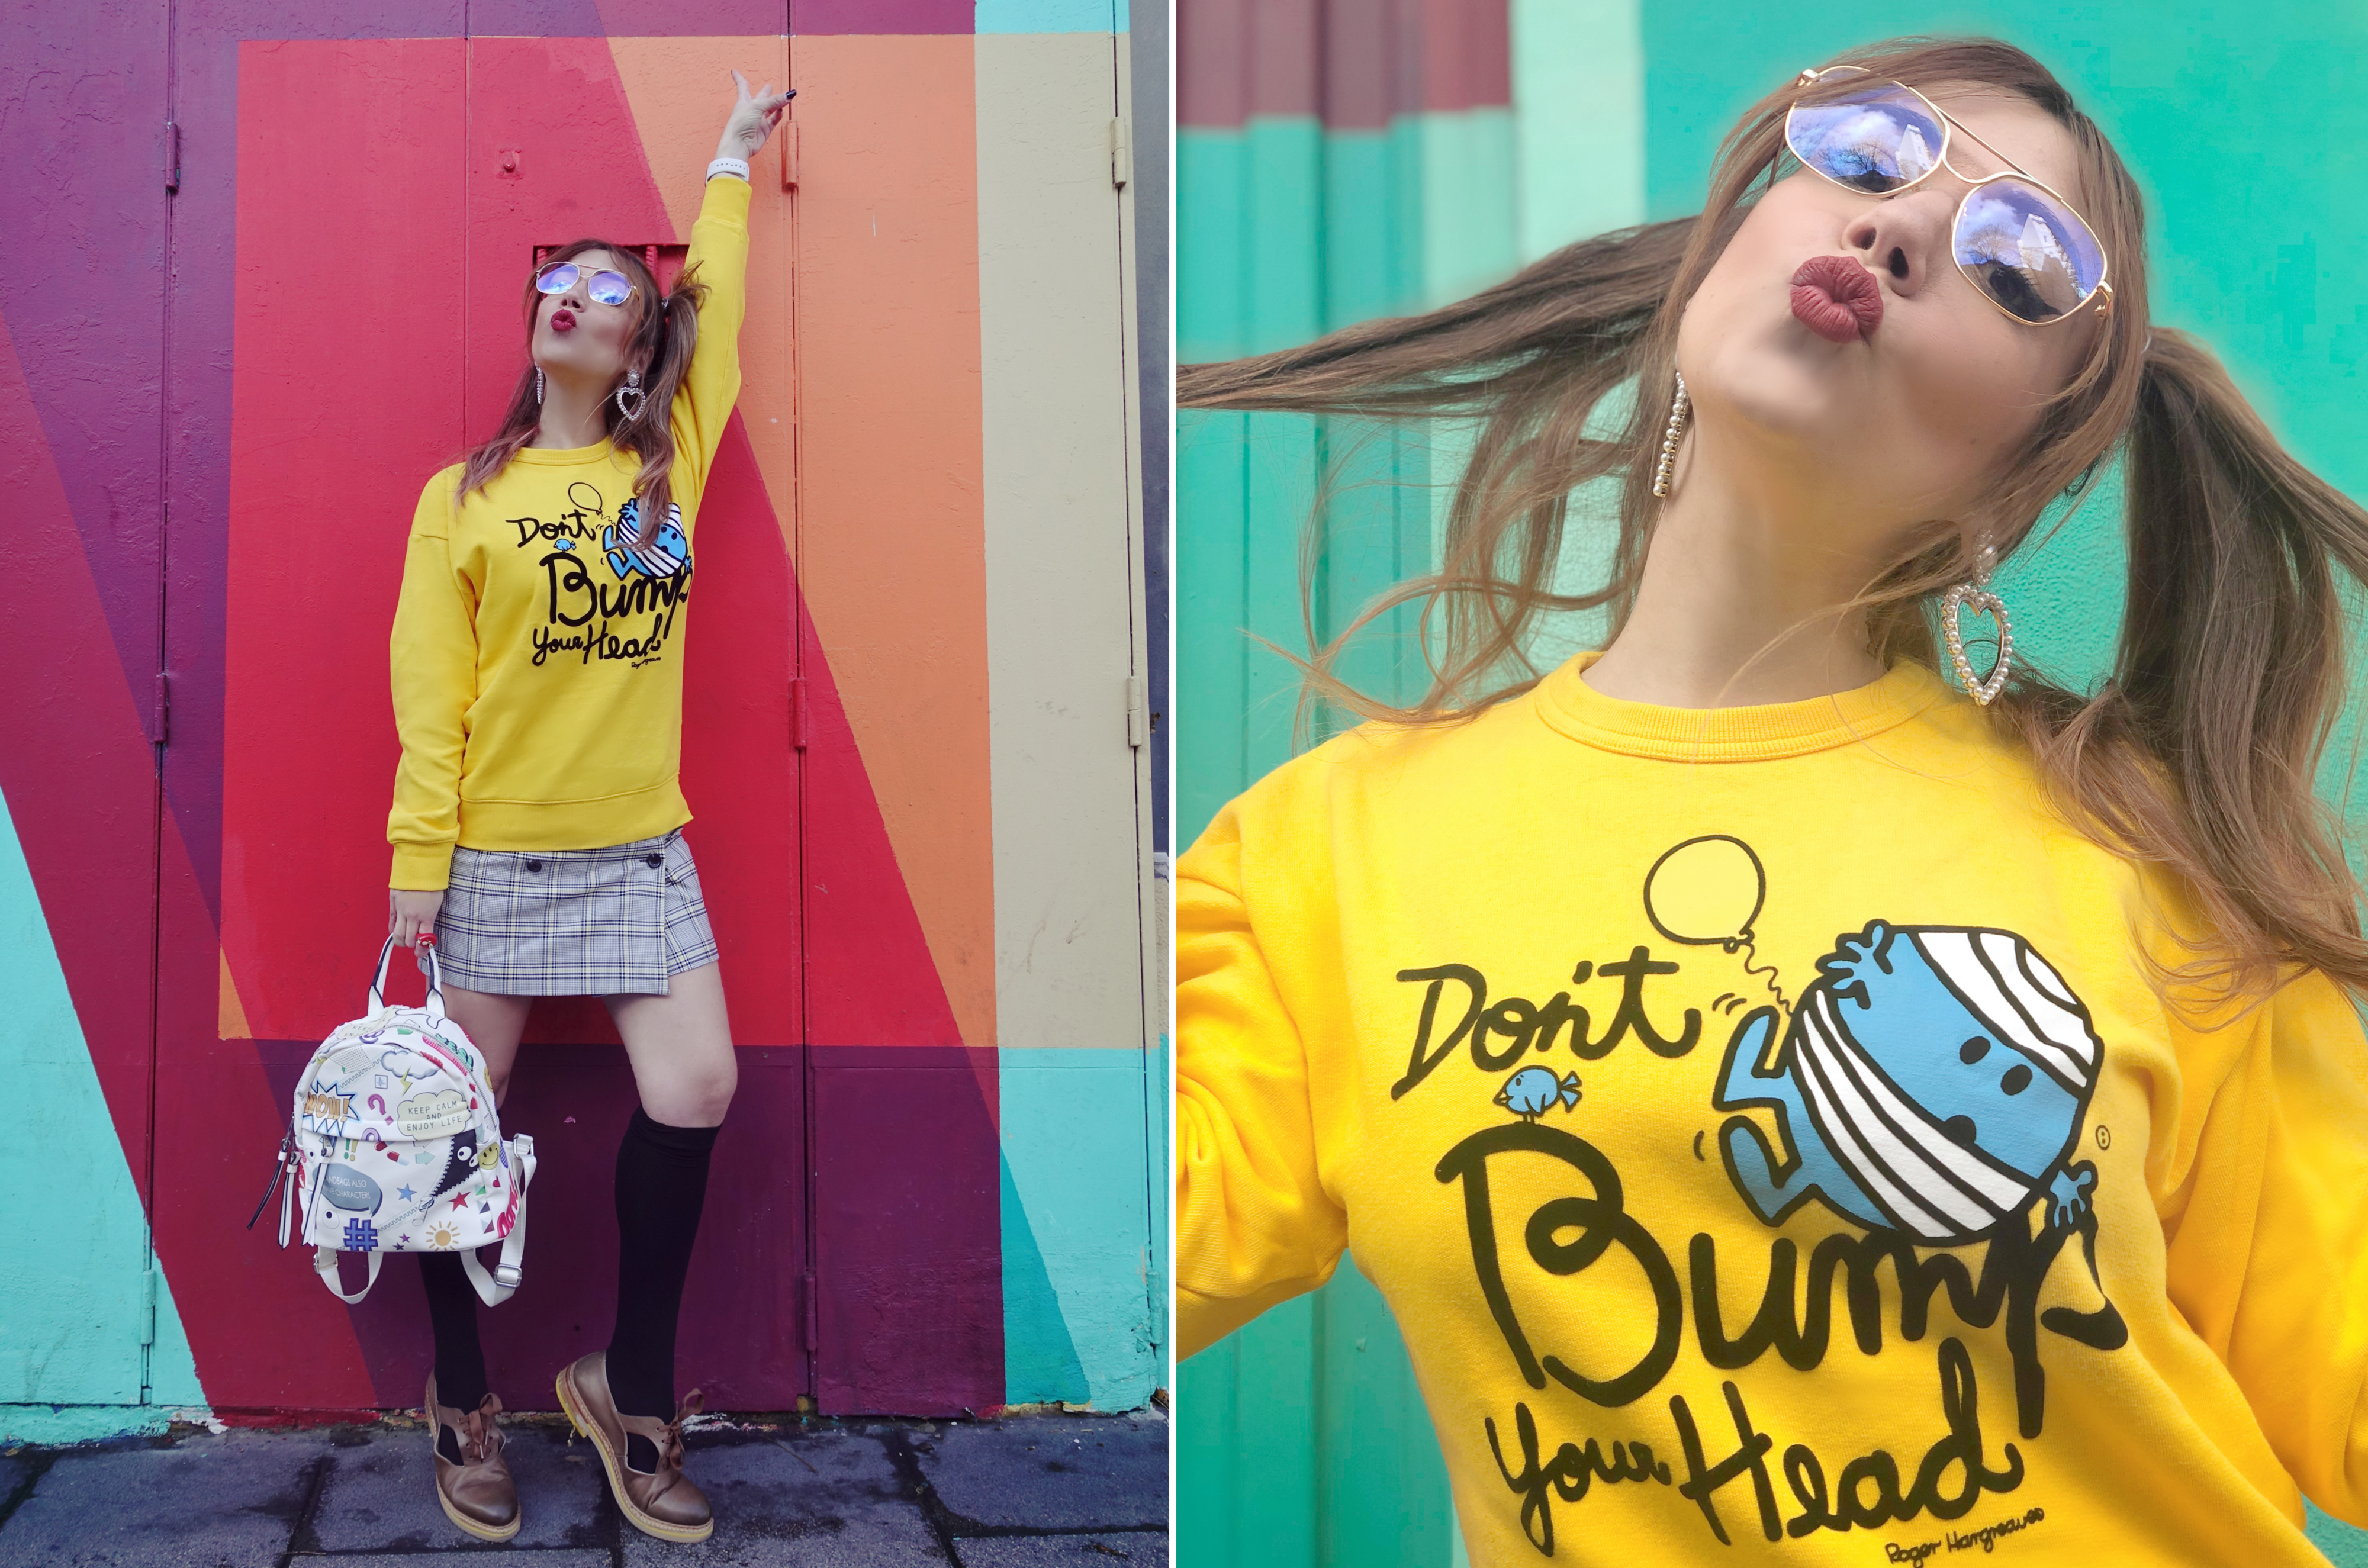 Bloog-de-moda-Chicadicta-PiensaenChic-influencer-fashionista-sudaderas-fashion-hkchocoolate-yellow-look-chic-adicta-Piensa-en-chic